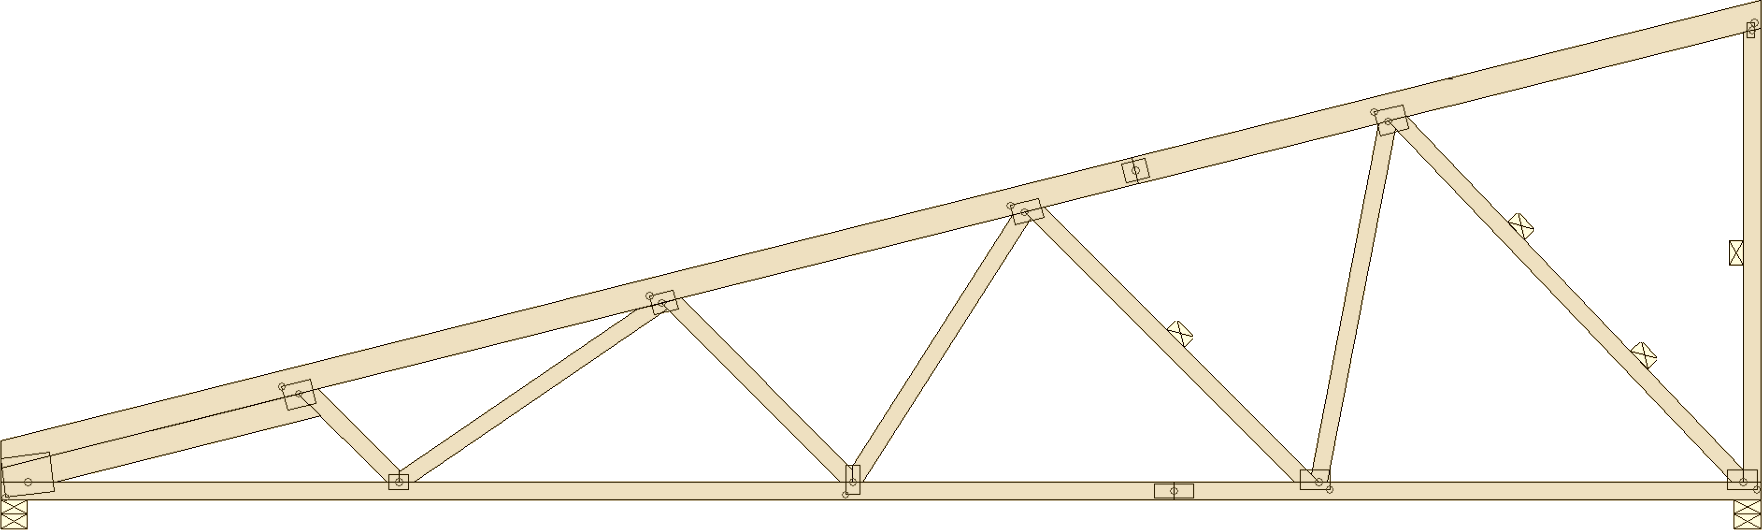 Mono Pitch Roof Shed Plans